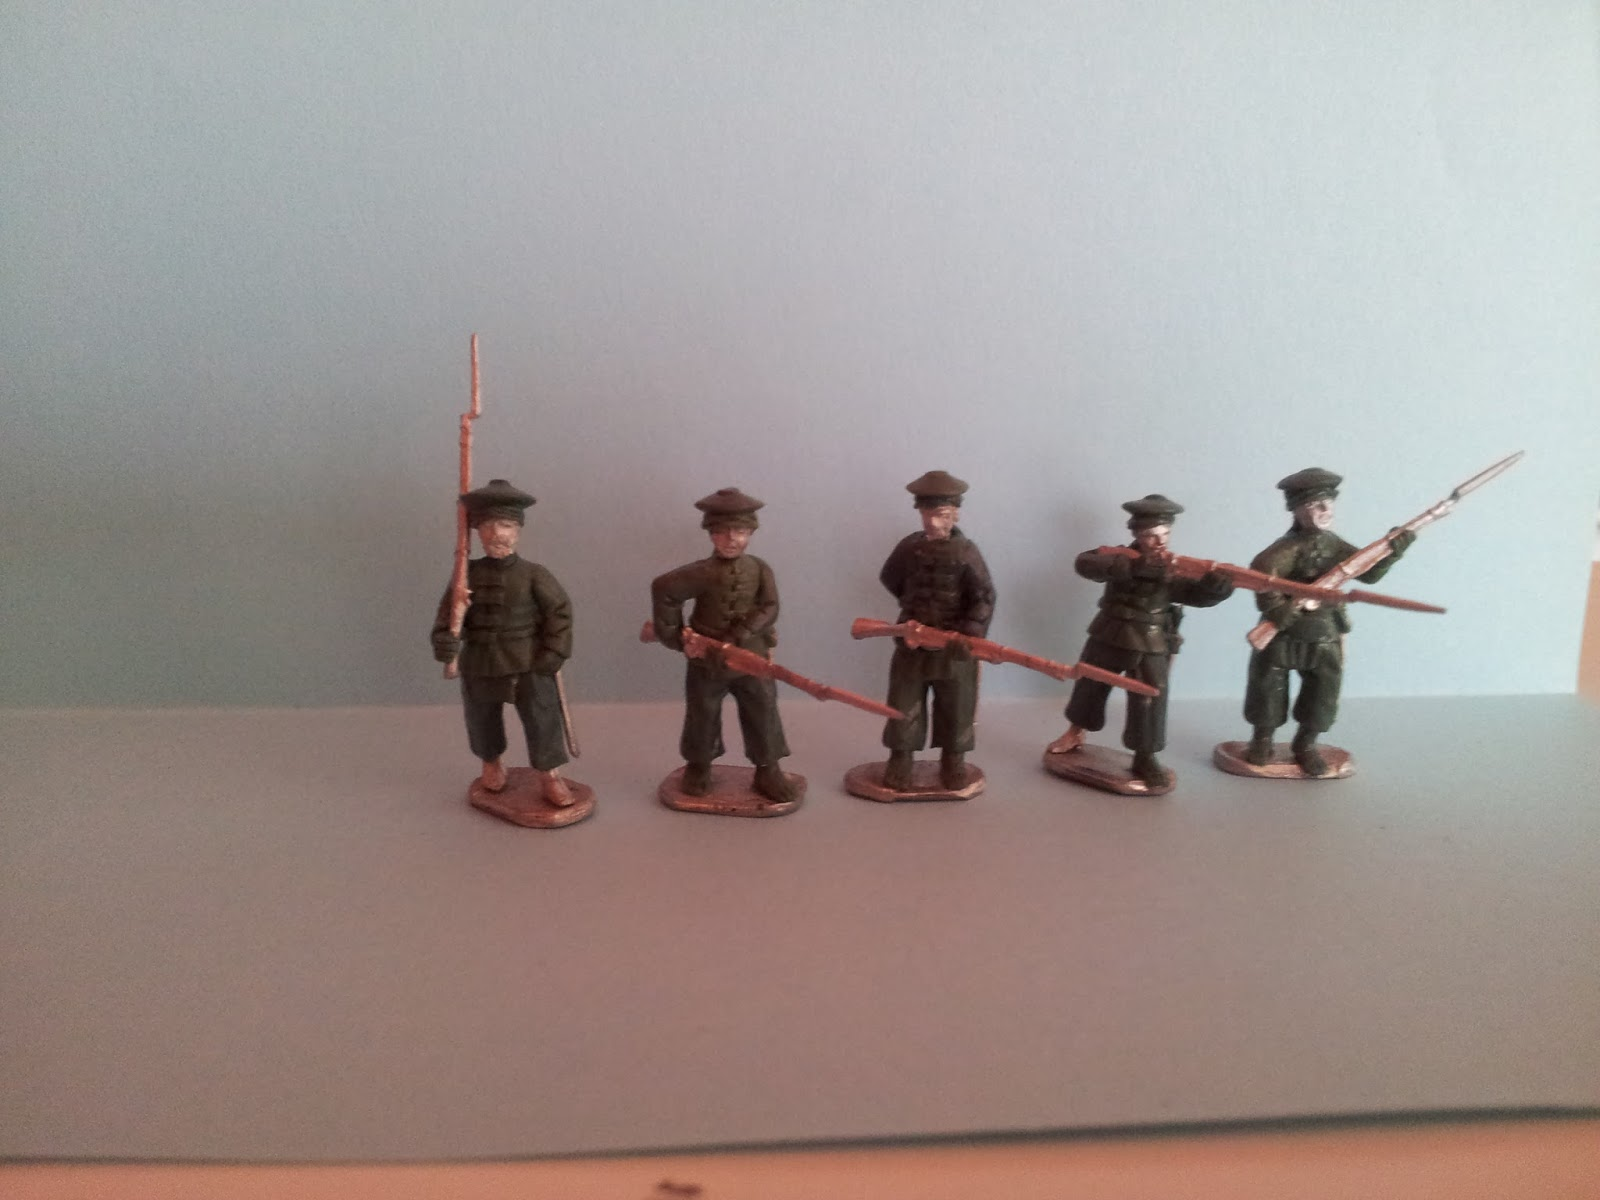 History in 1/72: Tirallieurs Anamite for Indochina 1880ies